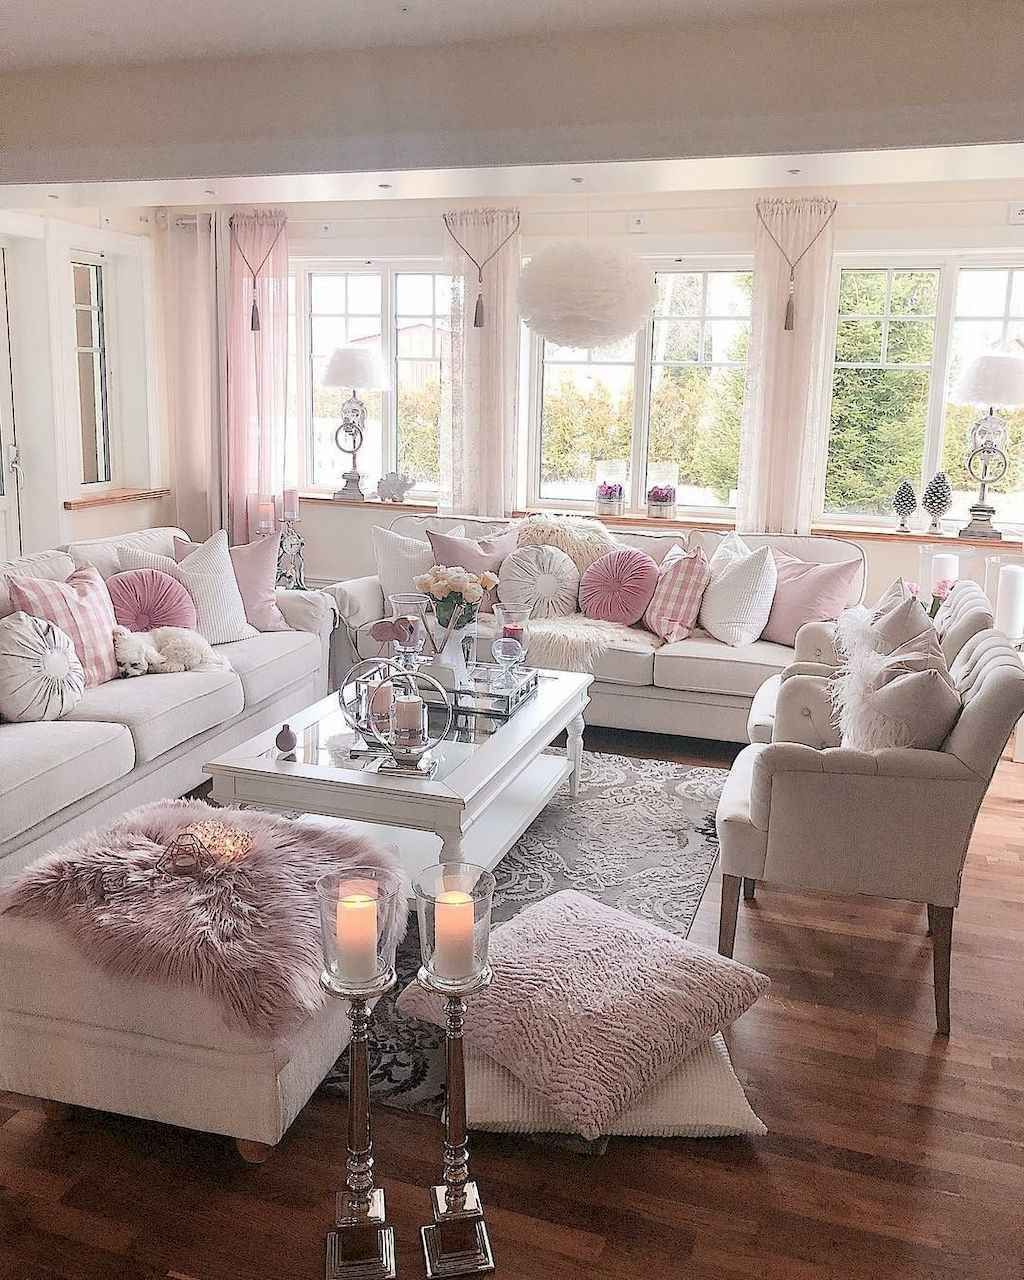 48 Romantic Shabby Chic Living Room Decor Ideas Shabby Chic Decor Living Room Shabby Chic Living Room Furniture Shabby Chic Living Room